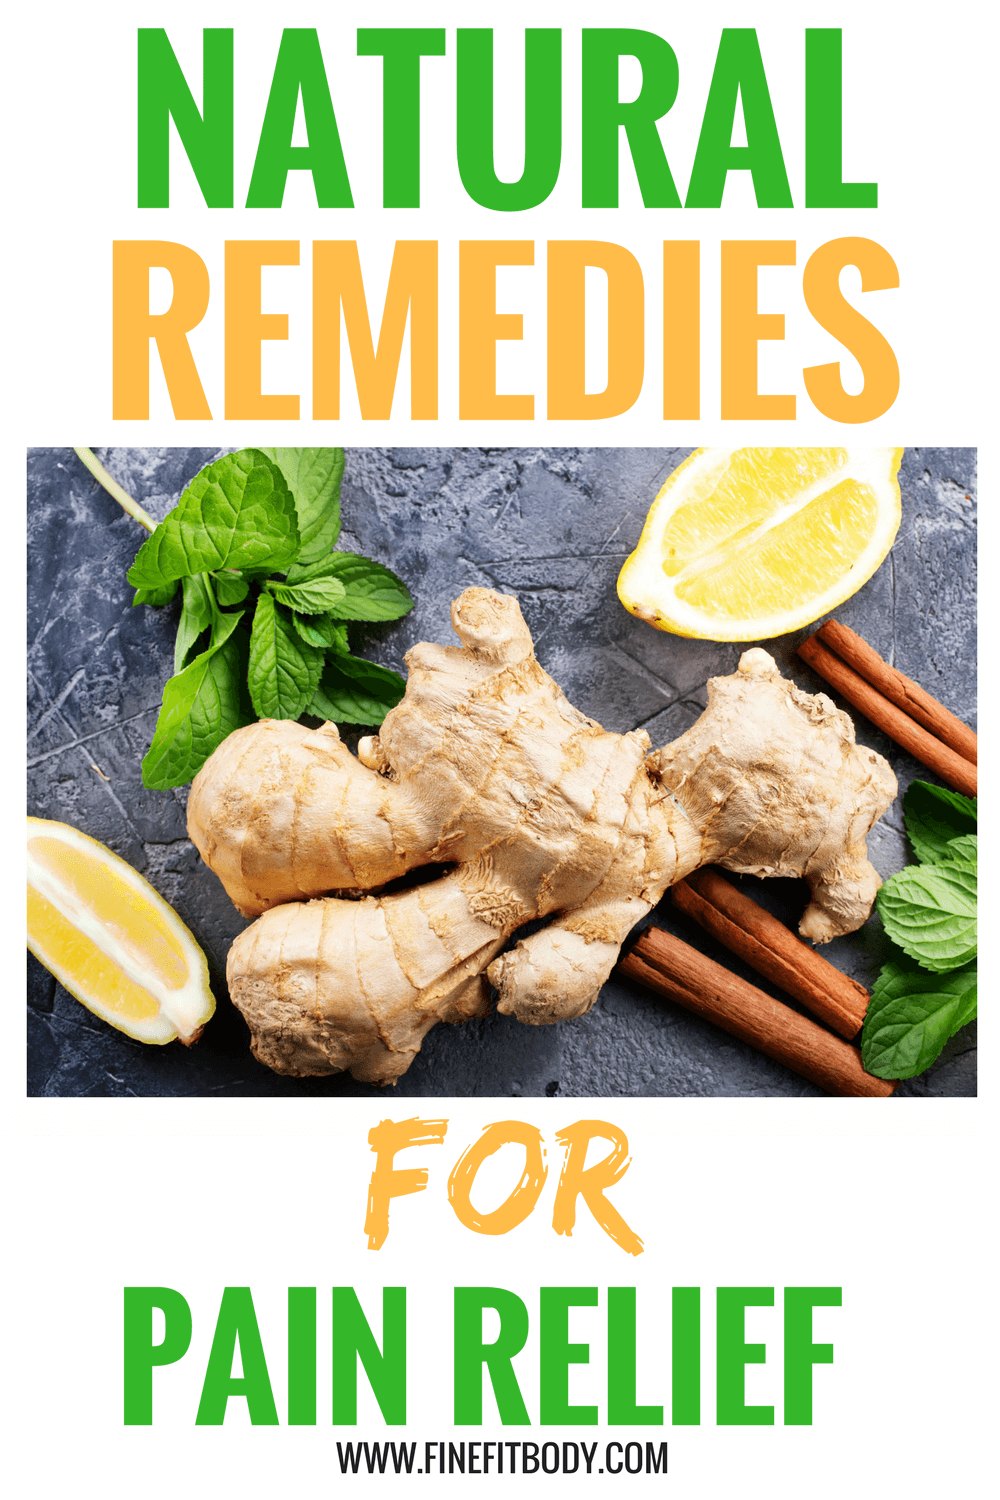 Wow, these natural home remedies for pain relief are amazing! Pinning for later!